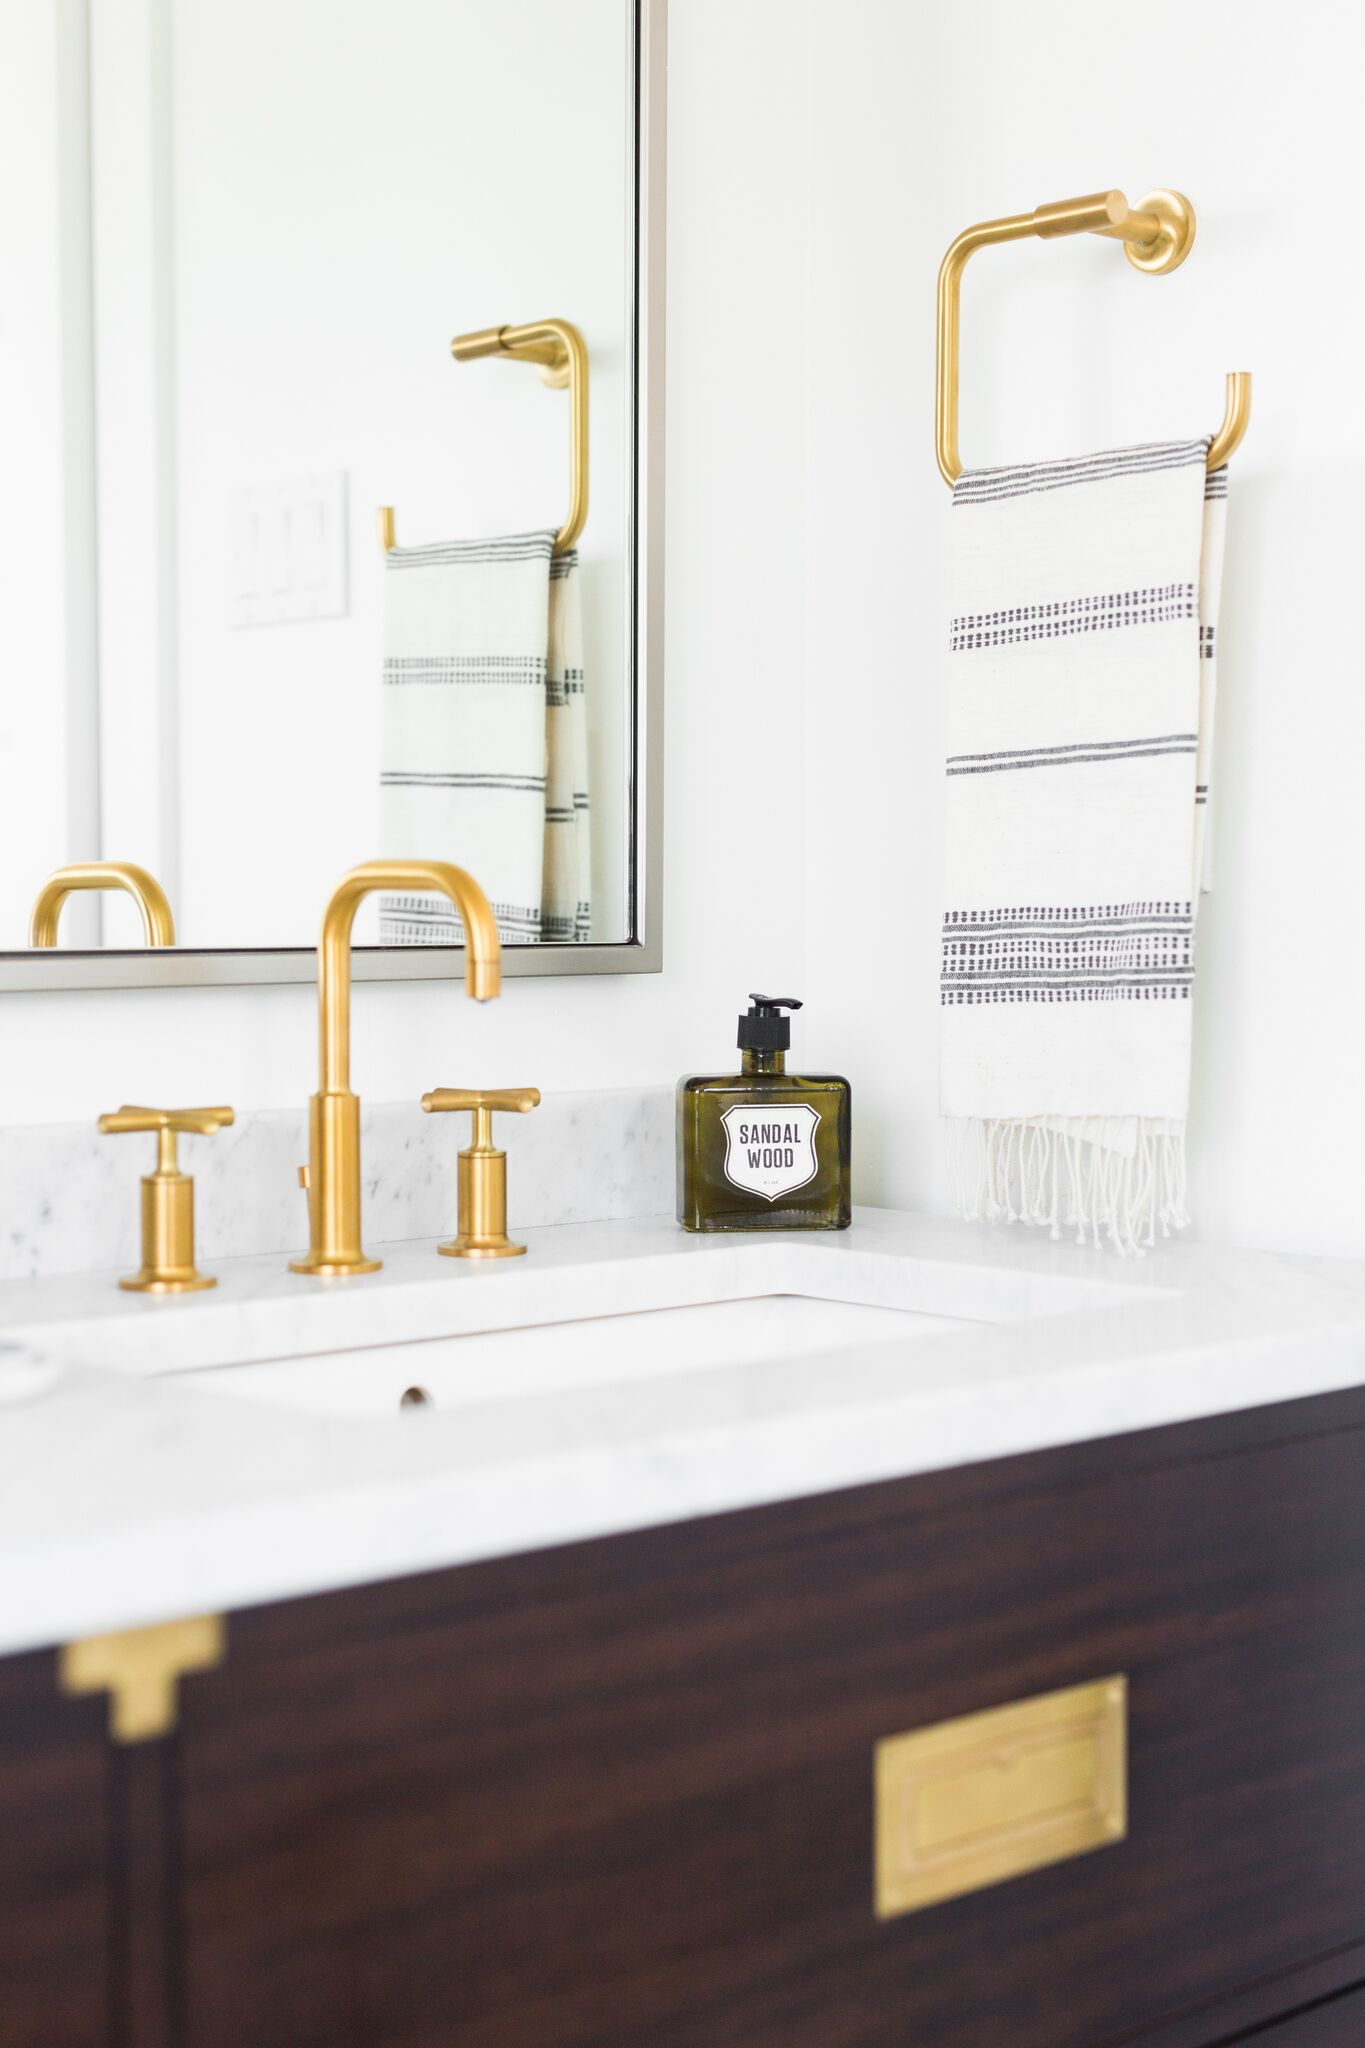 Detailed view of gold faucet in bathroom